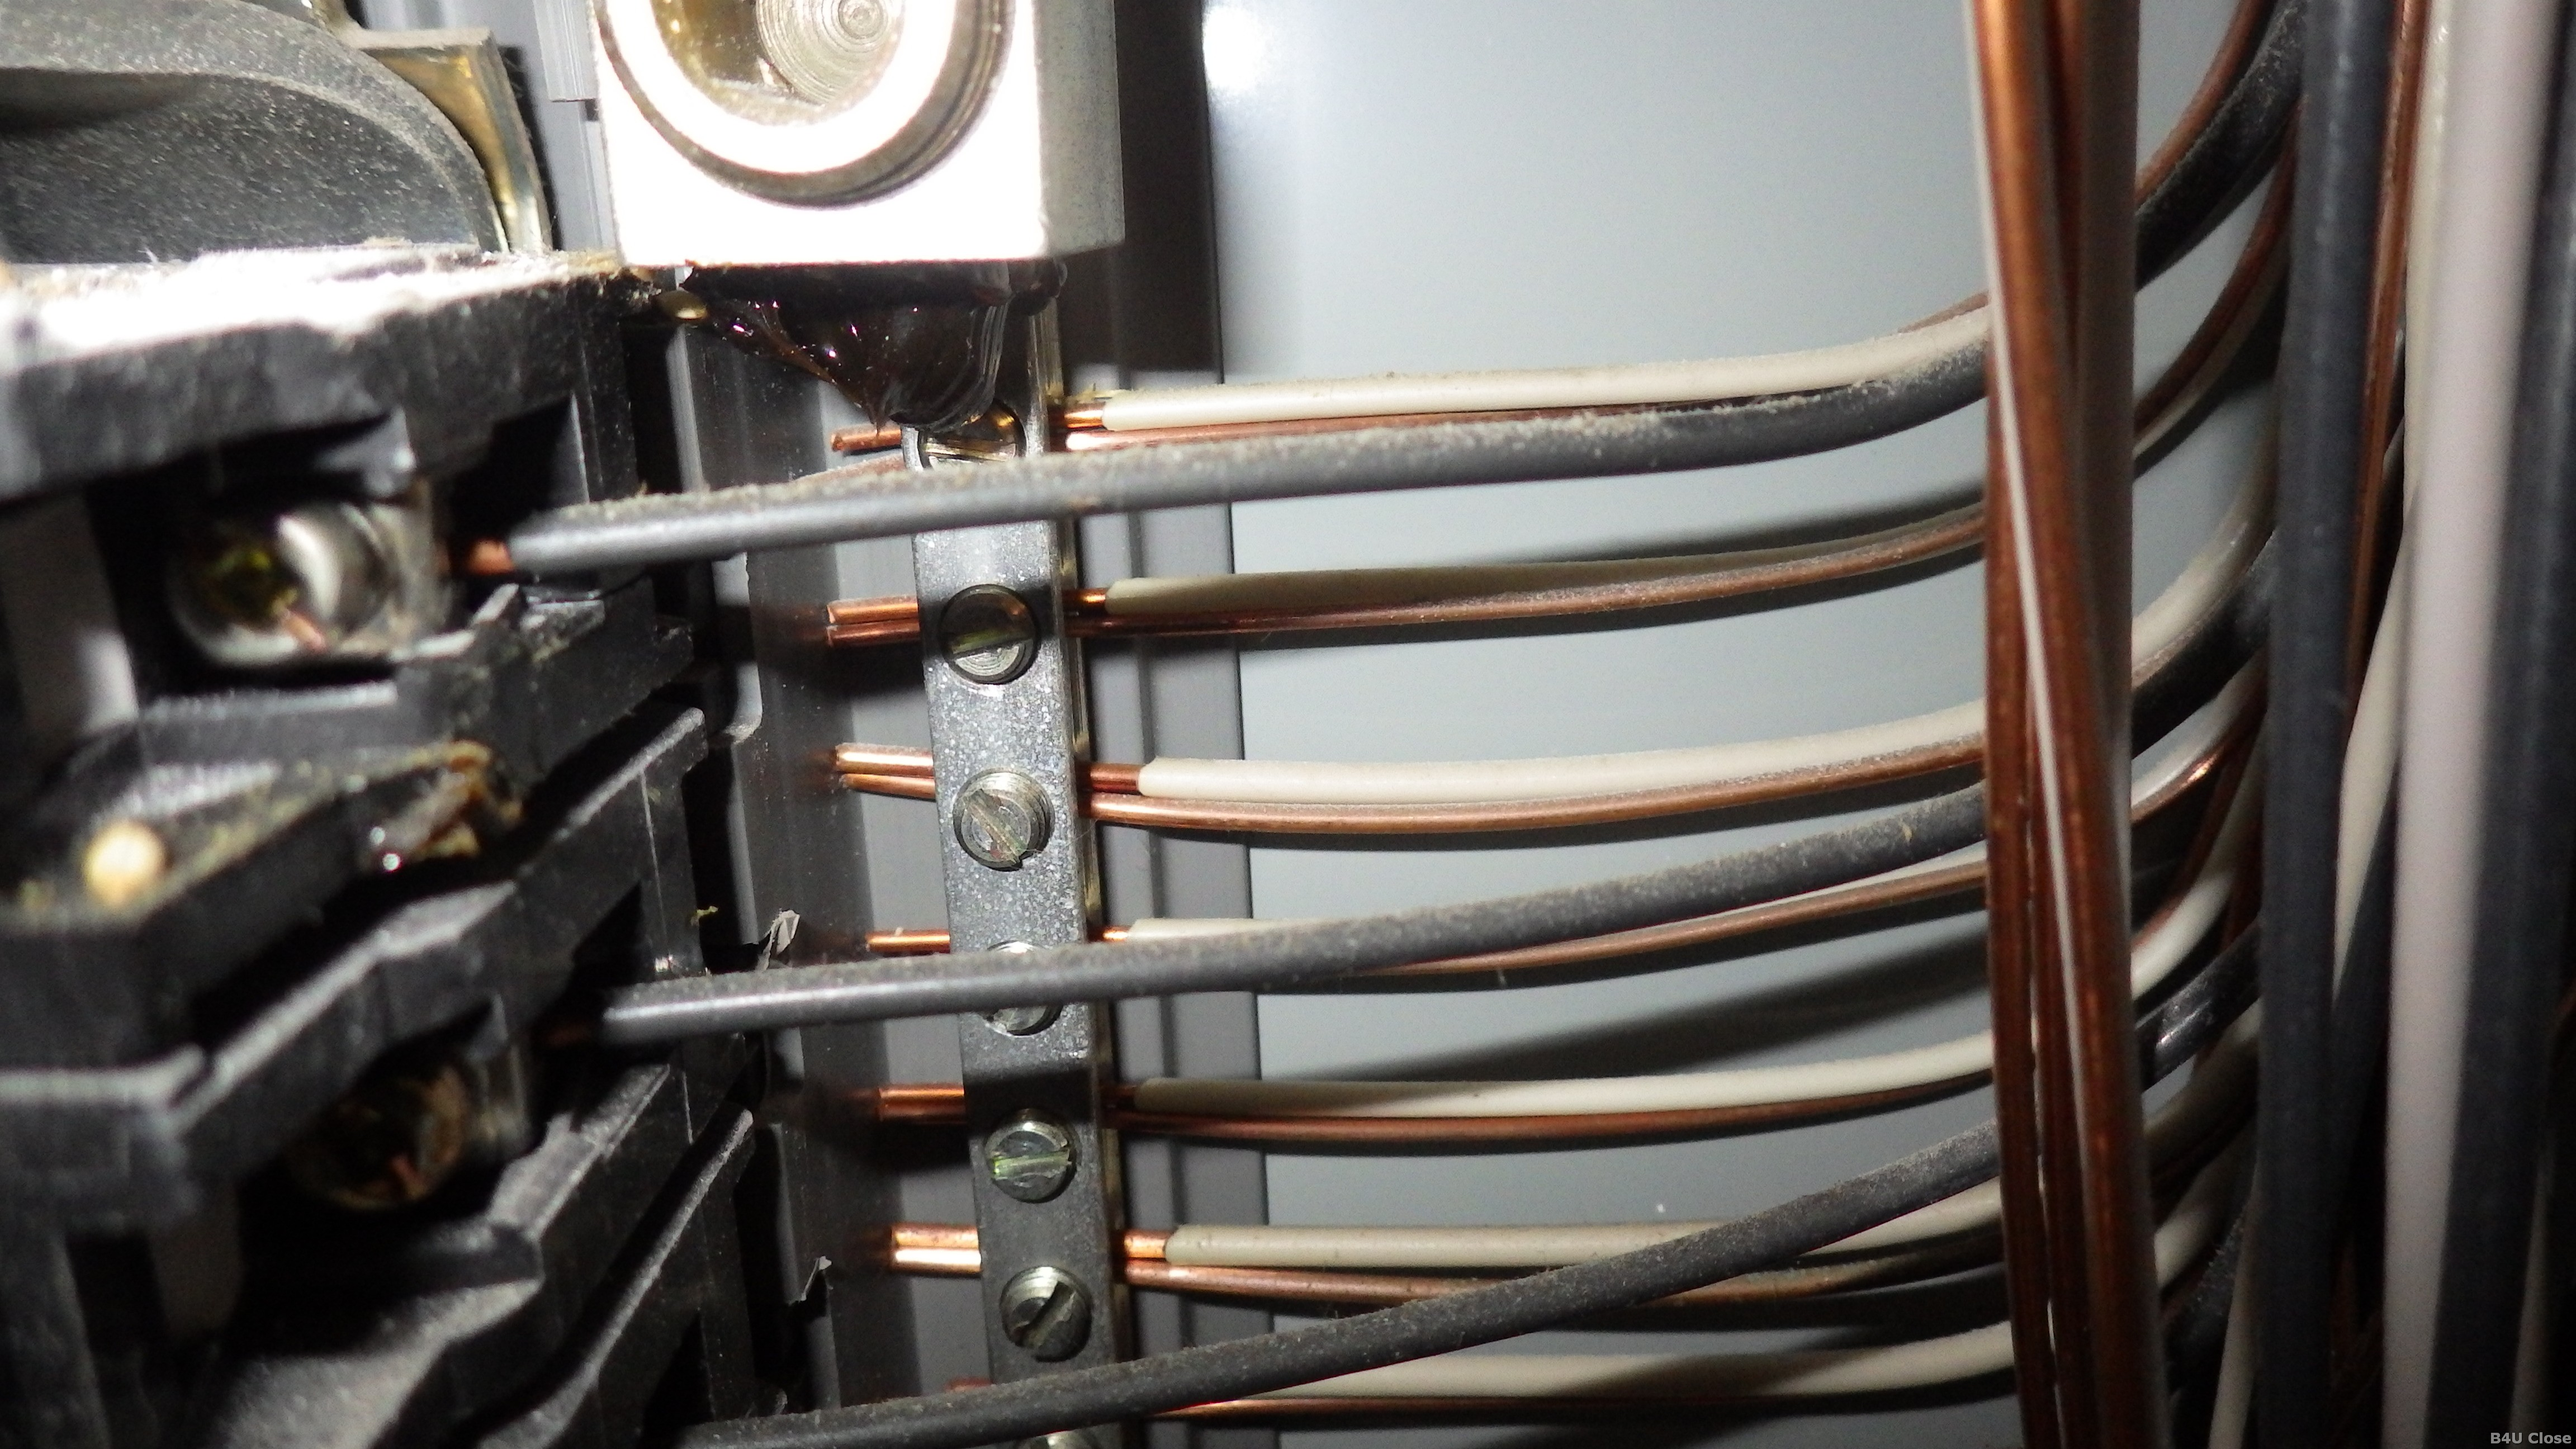 Double lugged neutral wires - B4U Close Home Inspections